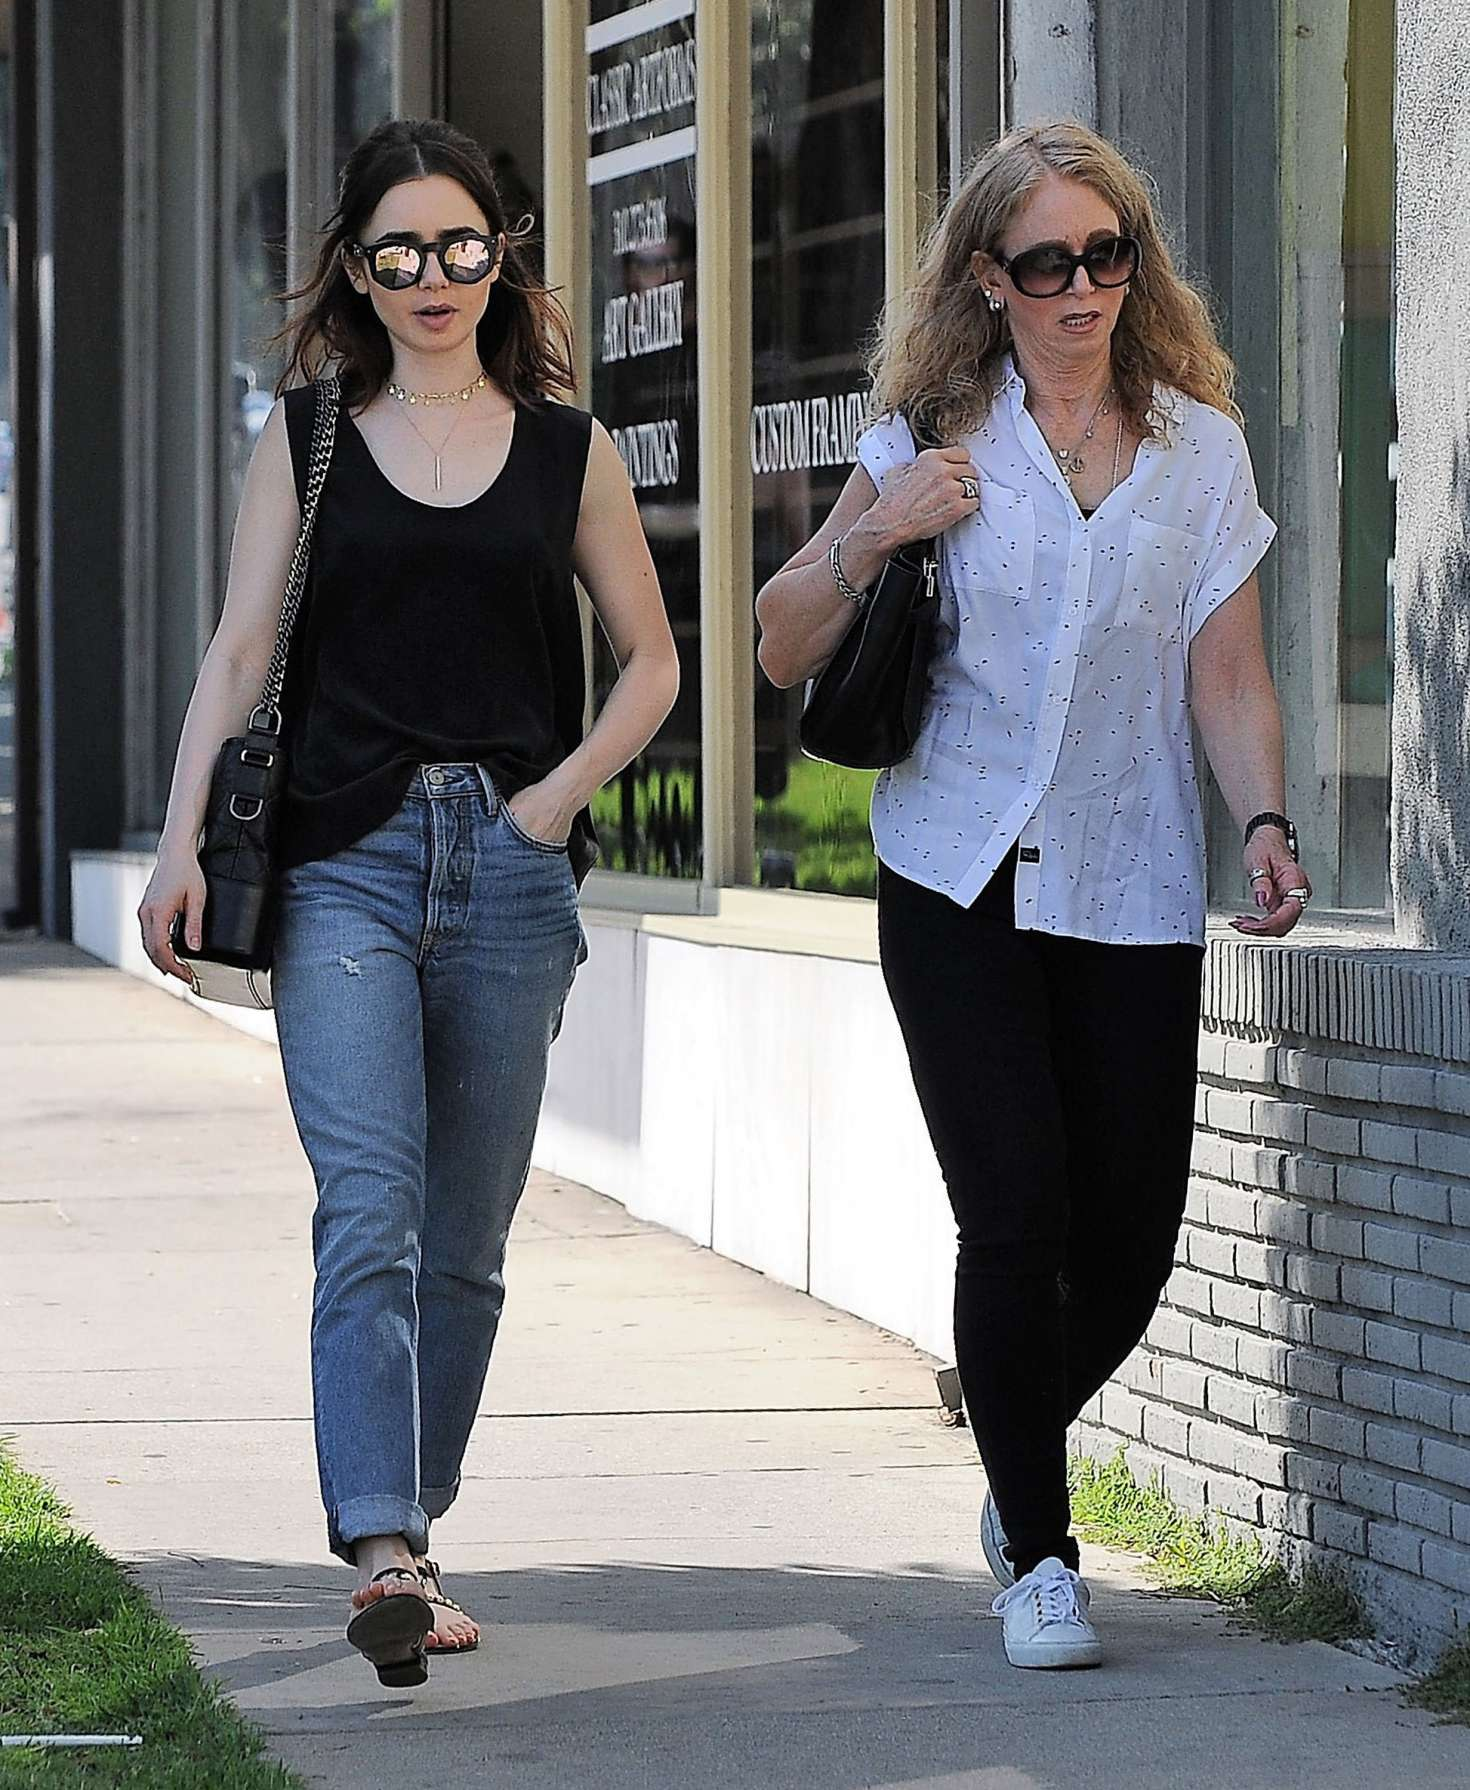 Lily Collins And Her Mother Jill Tavelman Out In West Hollywood 17 Gotceleb She is an actress, known for extra (1994). lily collins and her mother jill